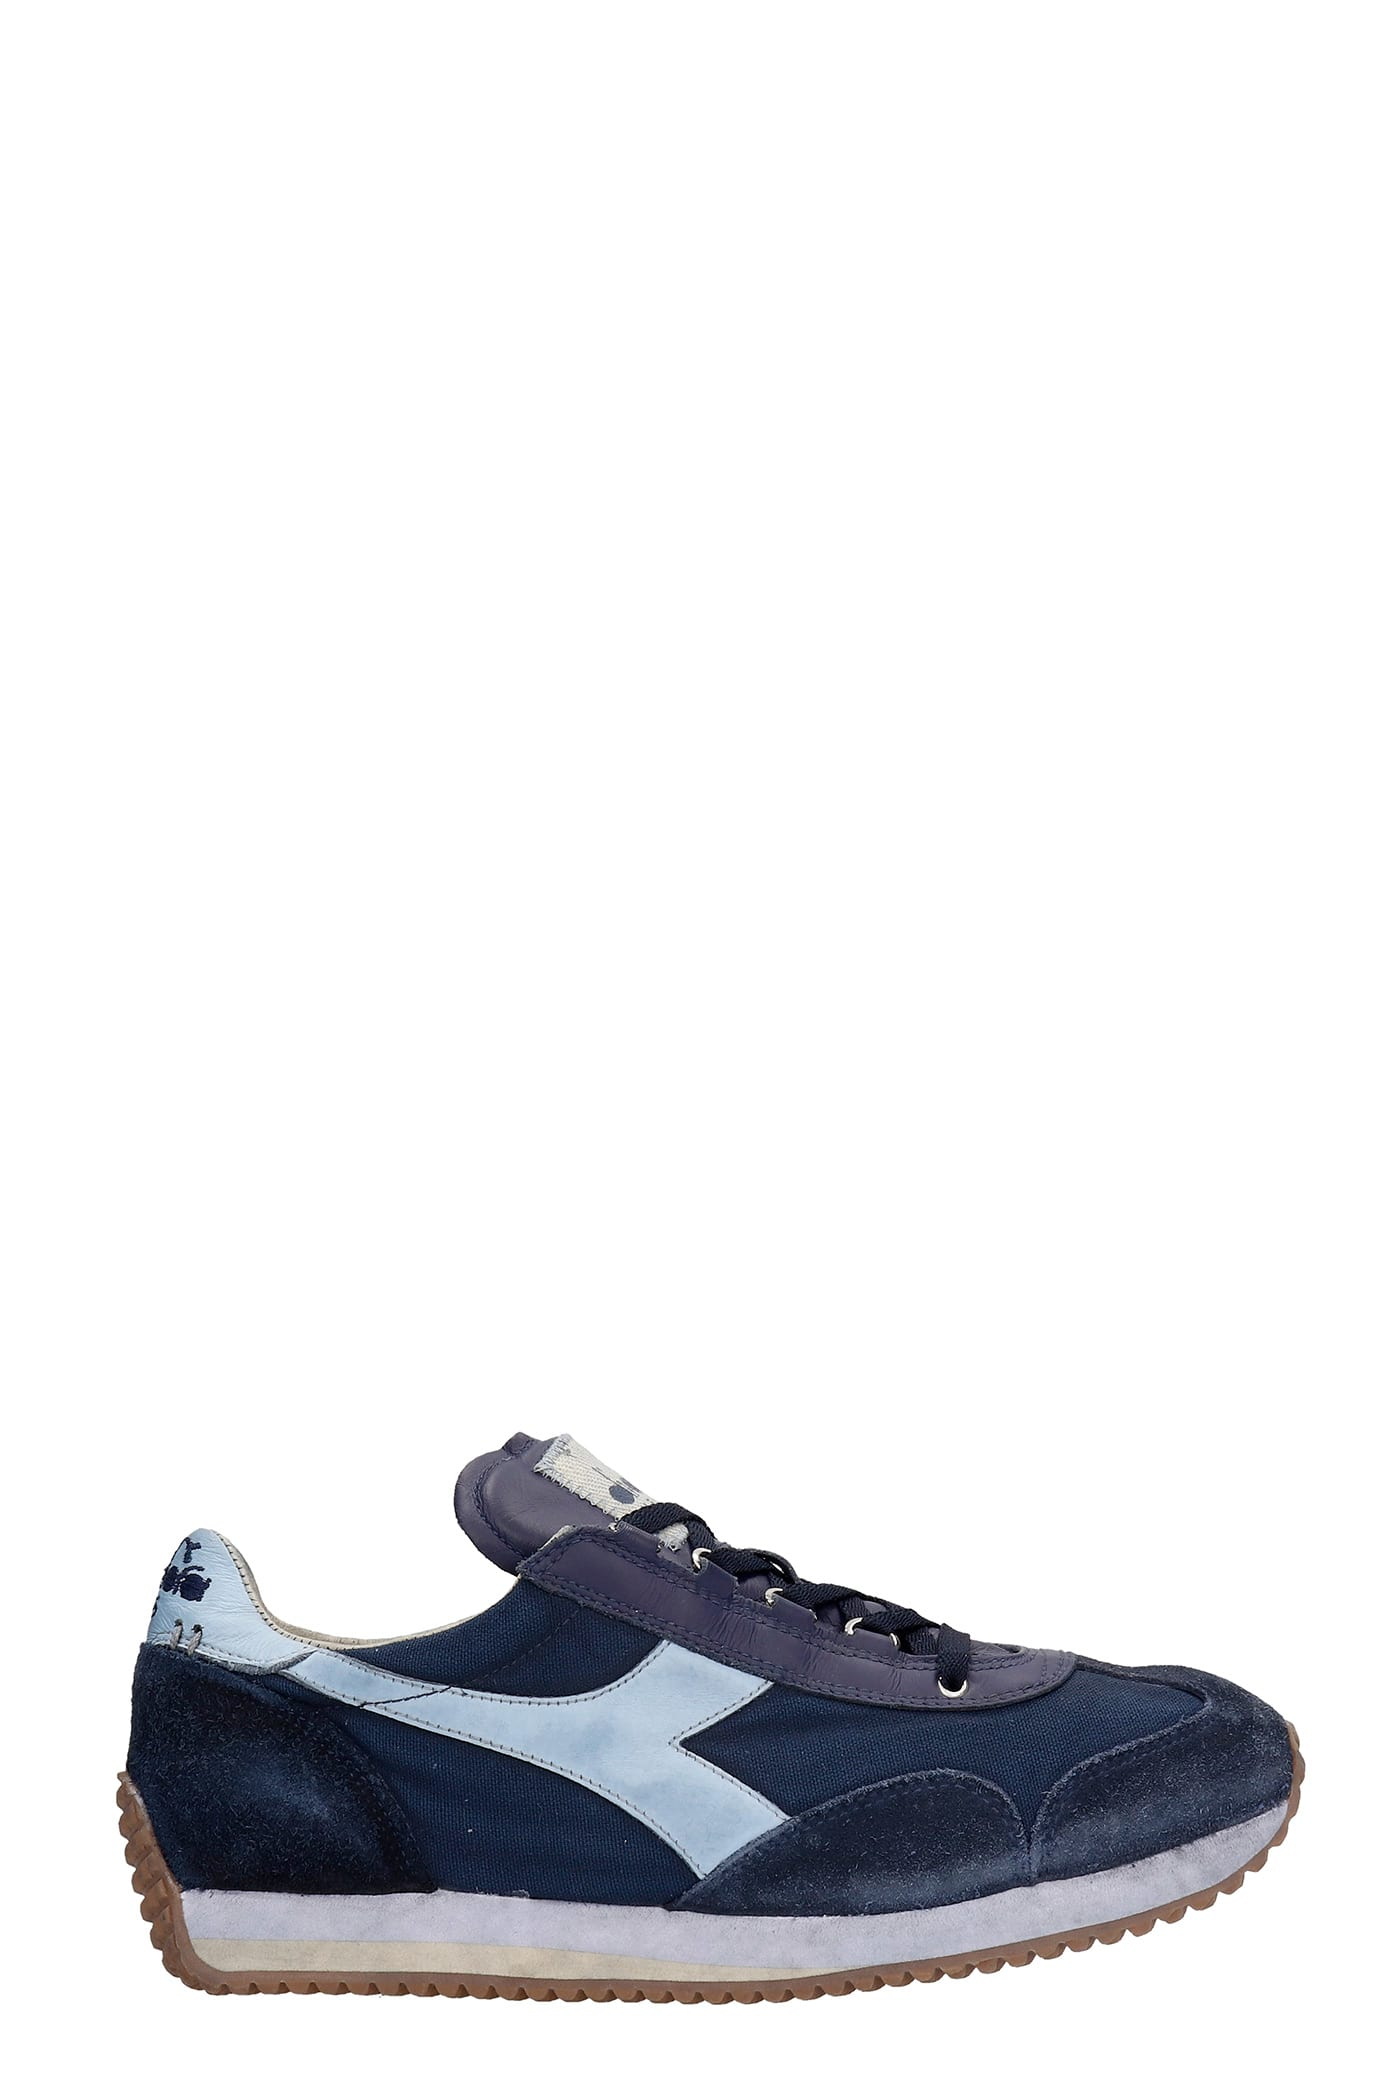 Equipe H Sneakers In Blue Suede And Fabric Diadora